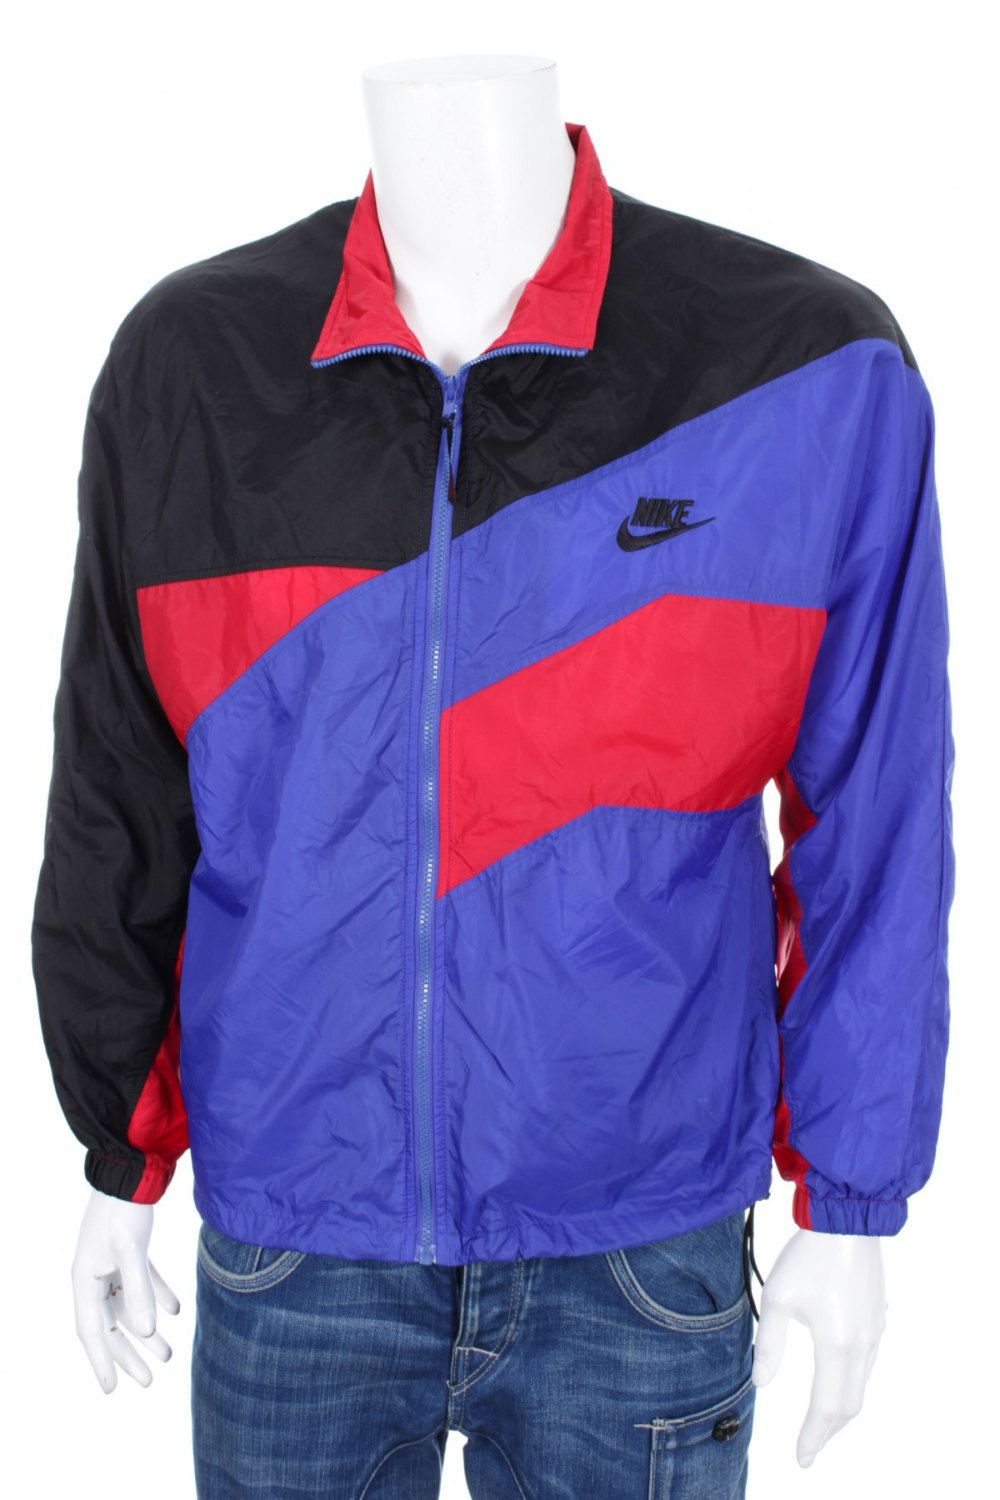 364e5617c3 Rare Vintage 90s Nike Windbreaker Track jacket Red Purple Black Color Block Size  M by VapeoVintage on Etsy